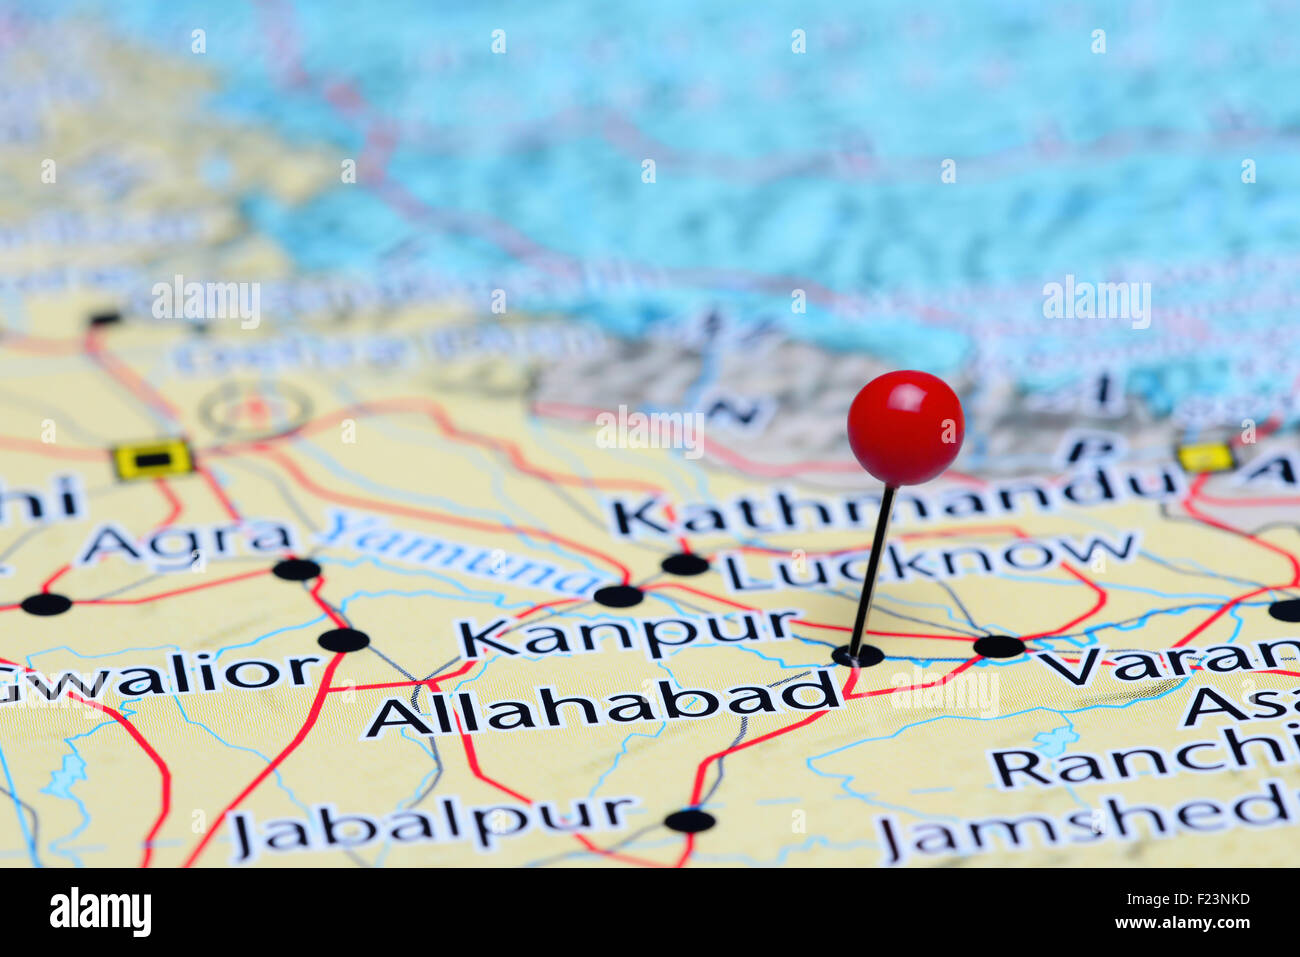 Allahabad Pinned On A Map Of Asia Stock Photo Royalty Free Image - Allahabad map